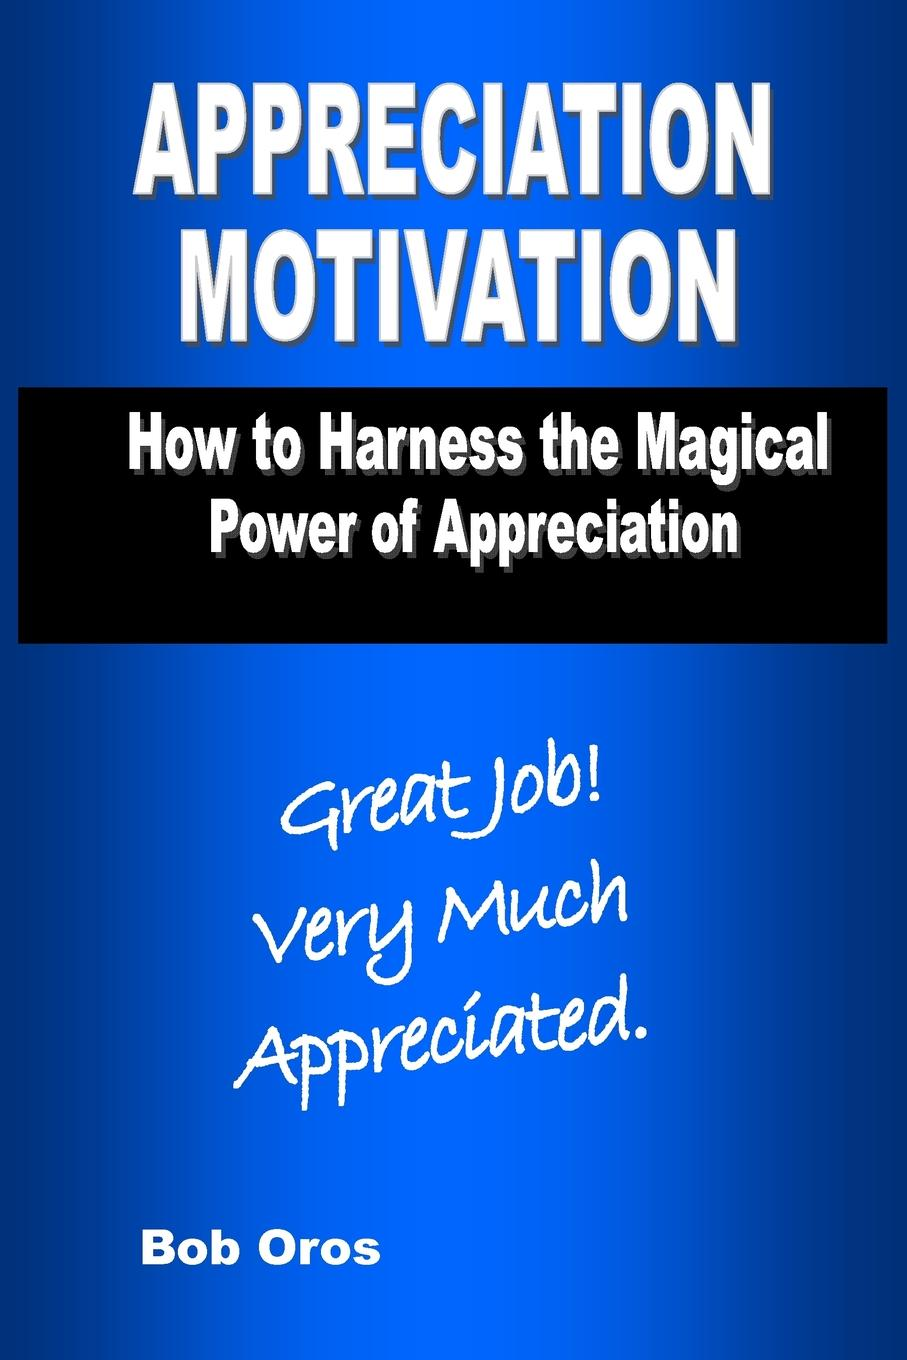 Bob Oros Appreciation Motivation. How to Harness the Magical Power of Appreciation motivation and action